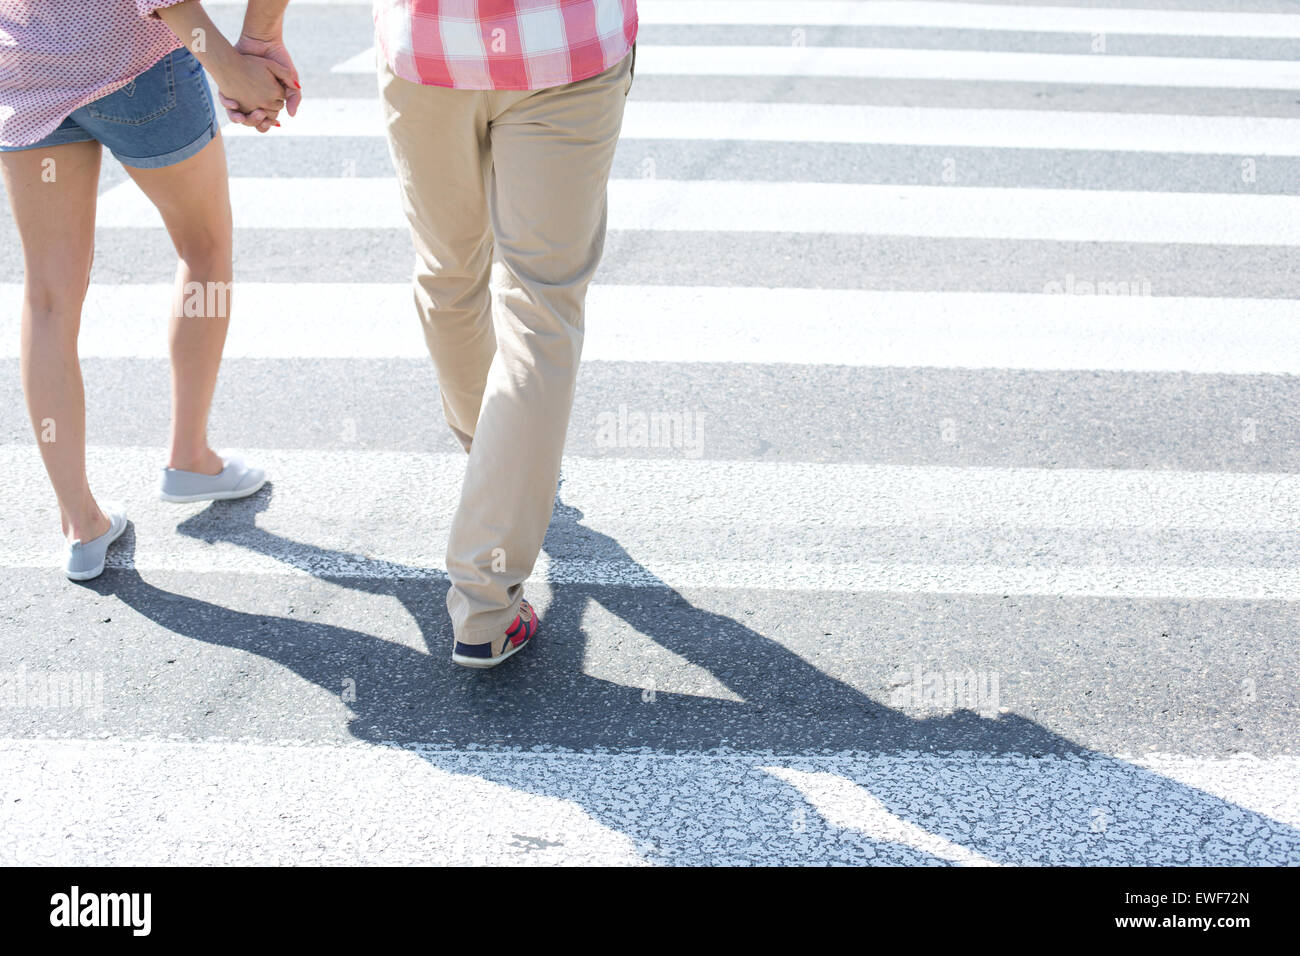 Low section of couple walking on crosswalk - Stock Image